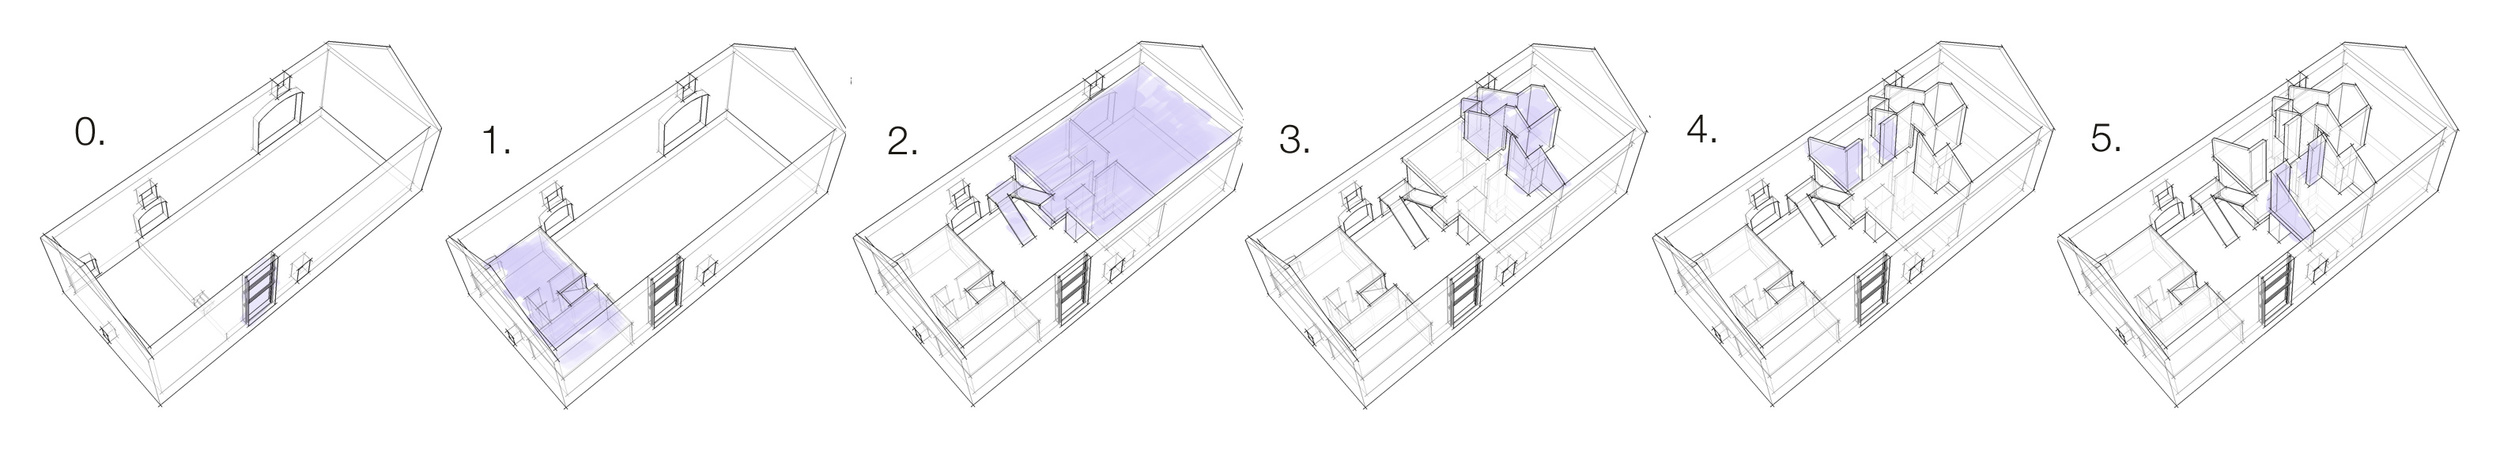 The different stages of the construction, each inhabitable and addressing the specific needs of the growing family (click to enlarge).